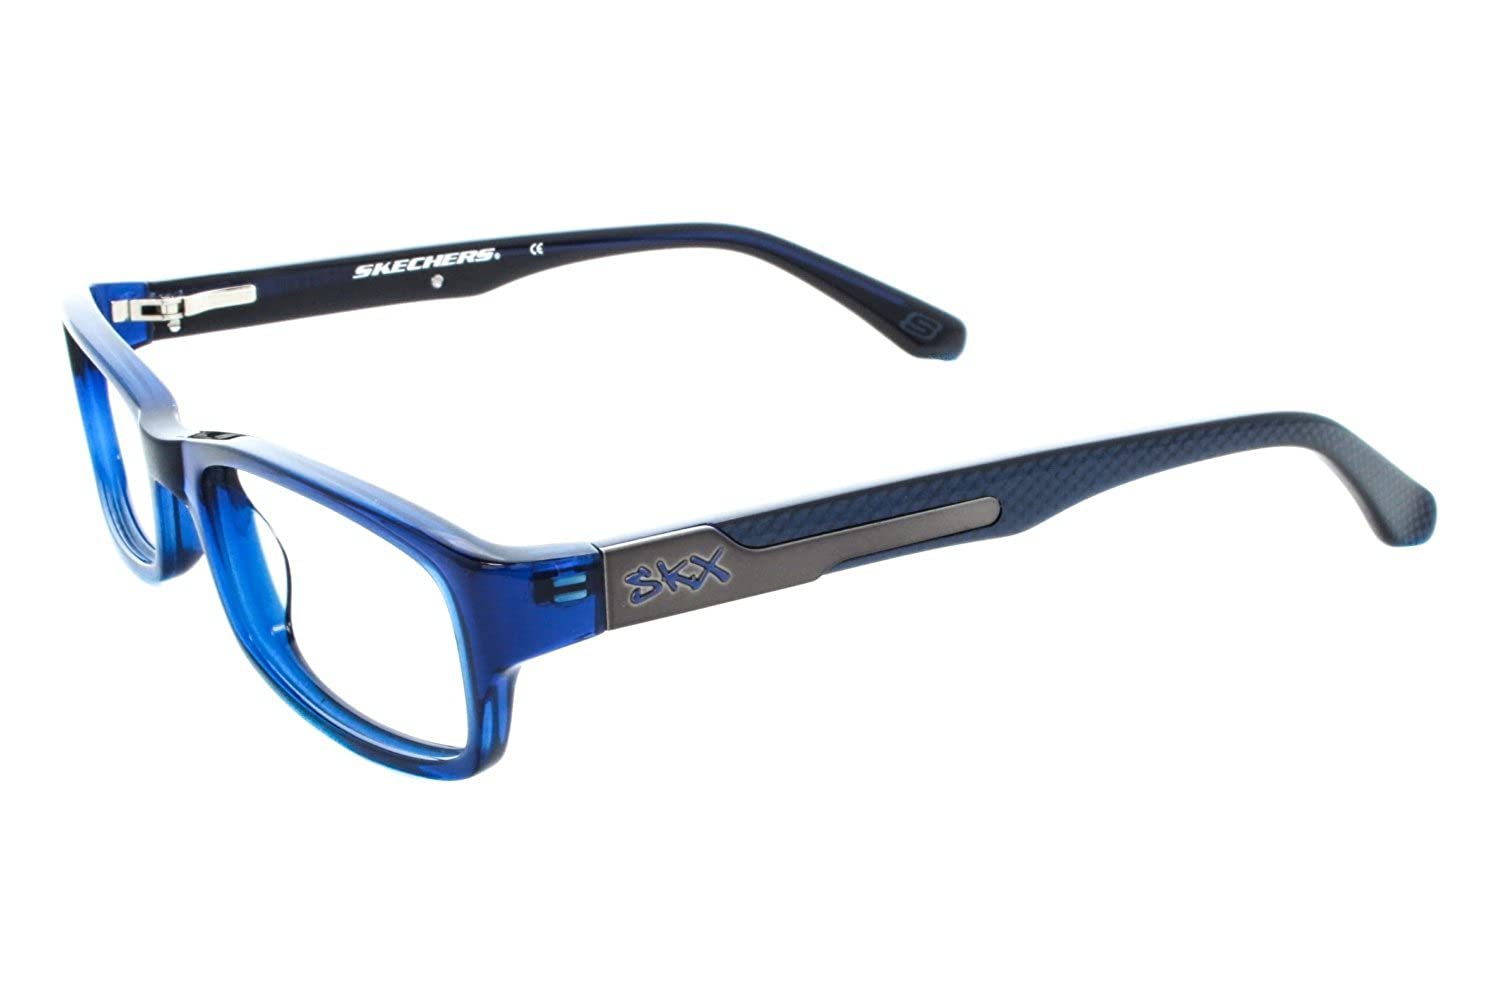 65cadeb159 Amazon.com  Skechers SK 1061 Childrens Eyeglass Frames - Dark Blue Crystal   Clothing